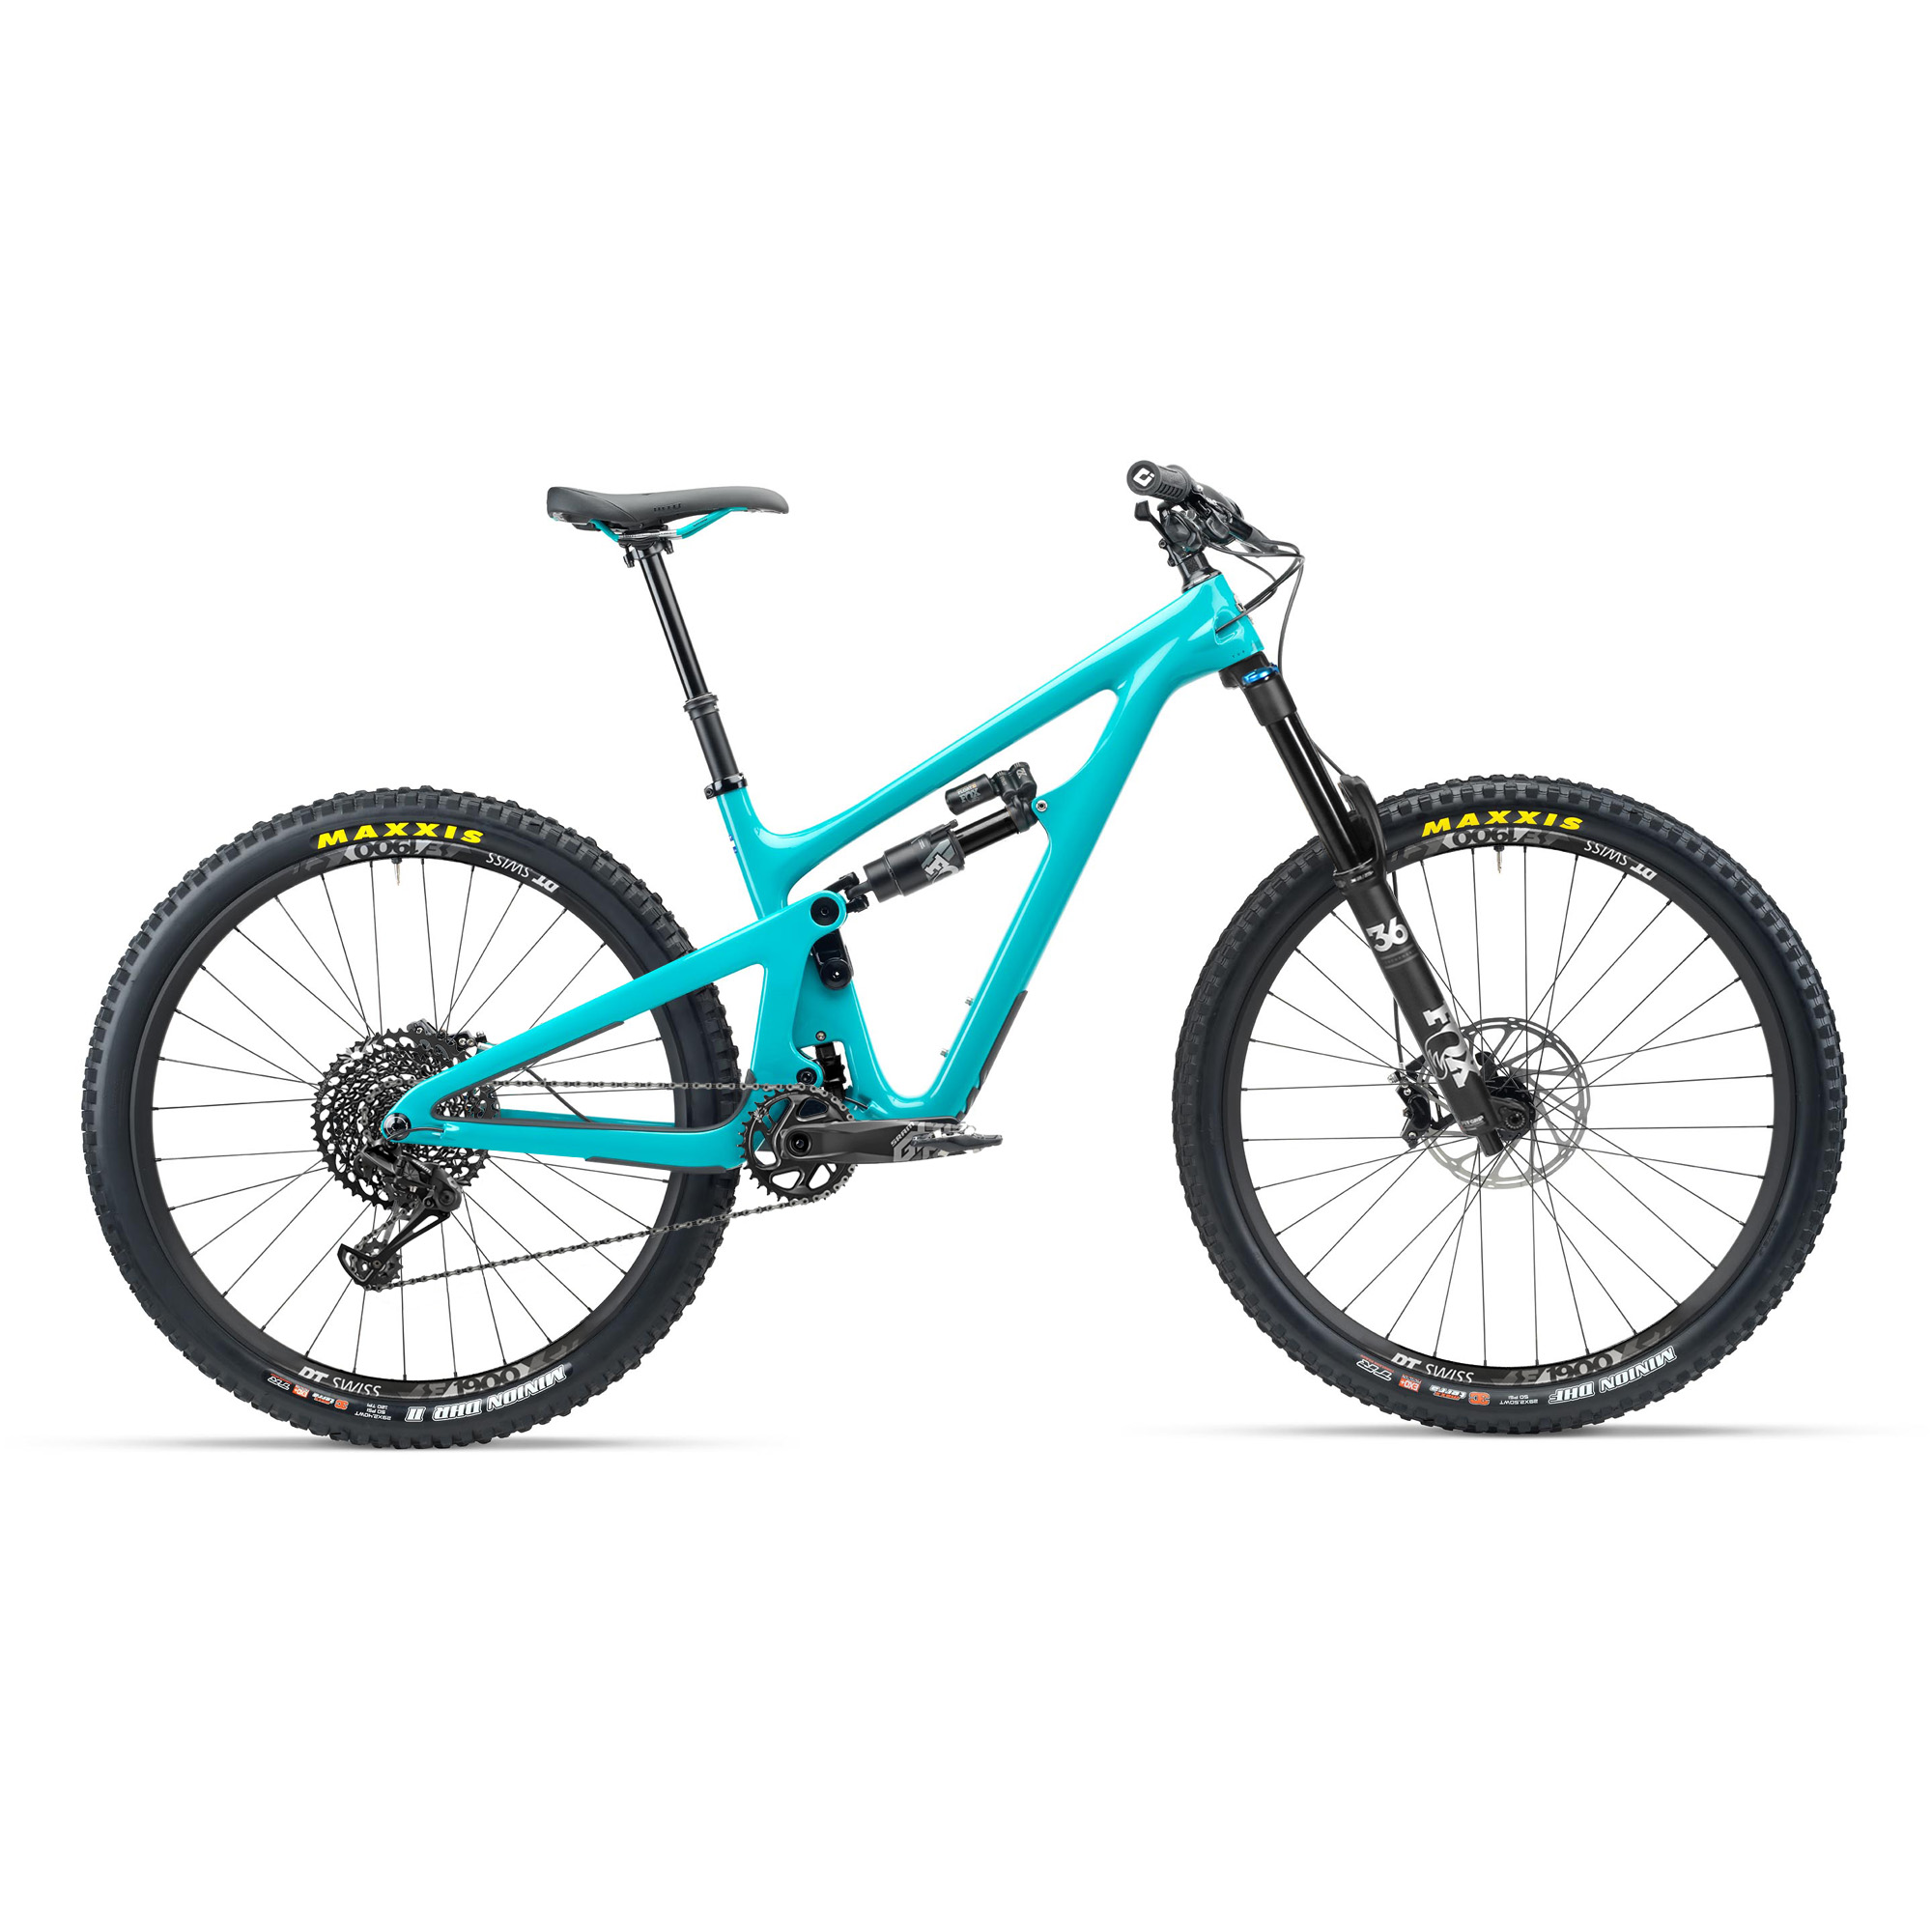 Yeti SB150 C-Series 29er Mountain Bike 2020 Turquoise